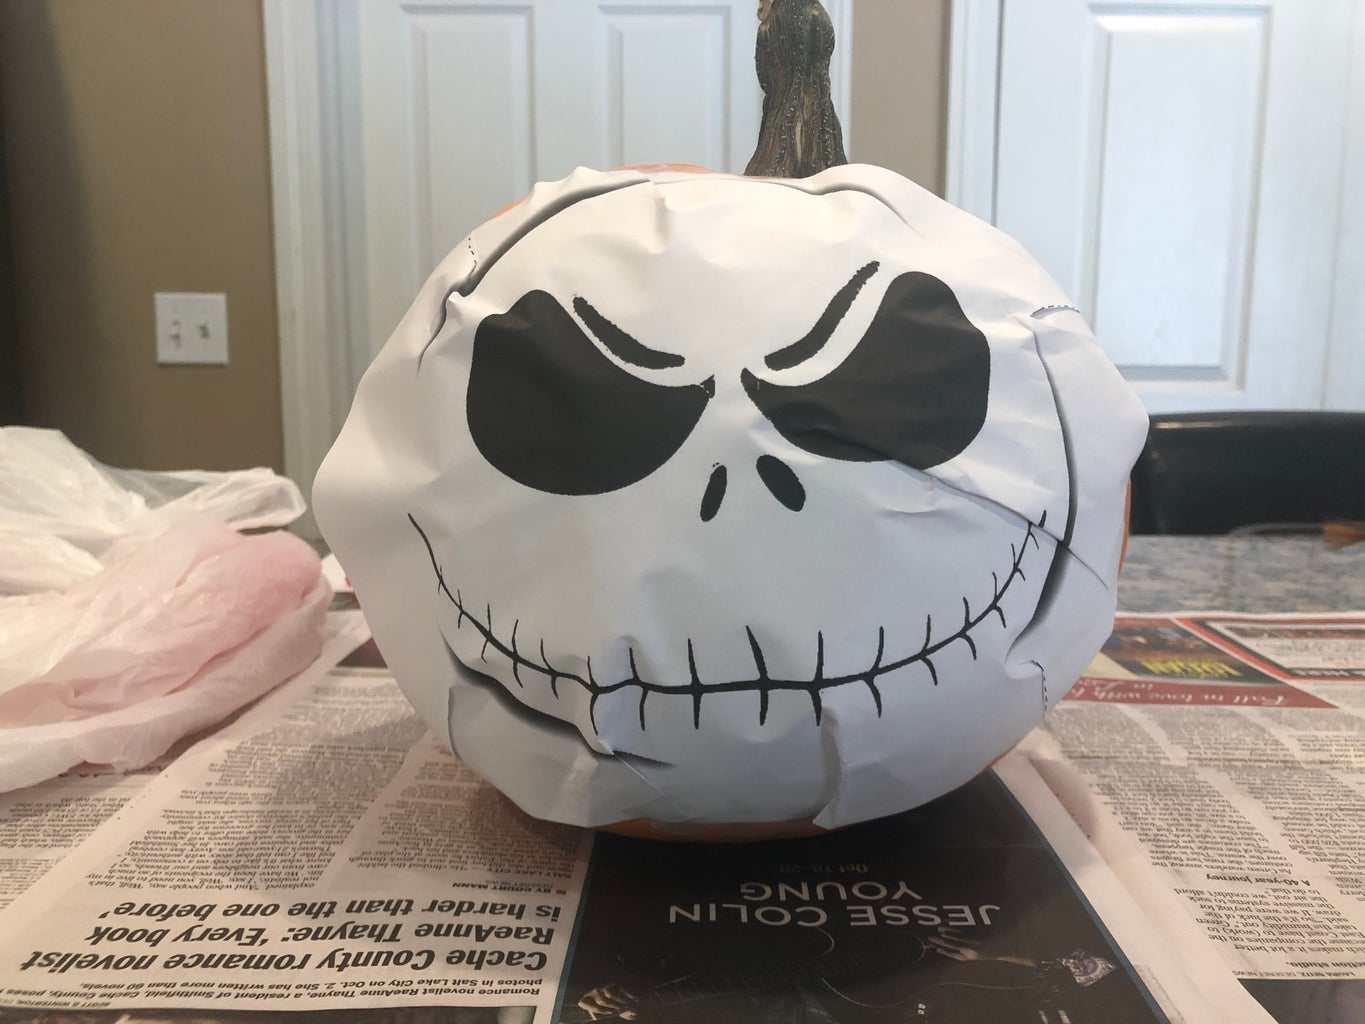 Placing the Pattern on the Pumpkin